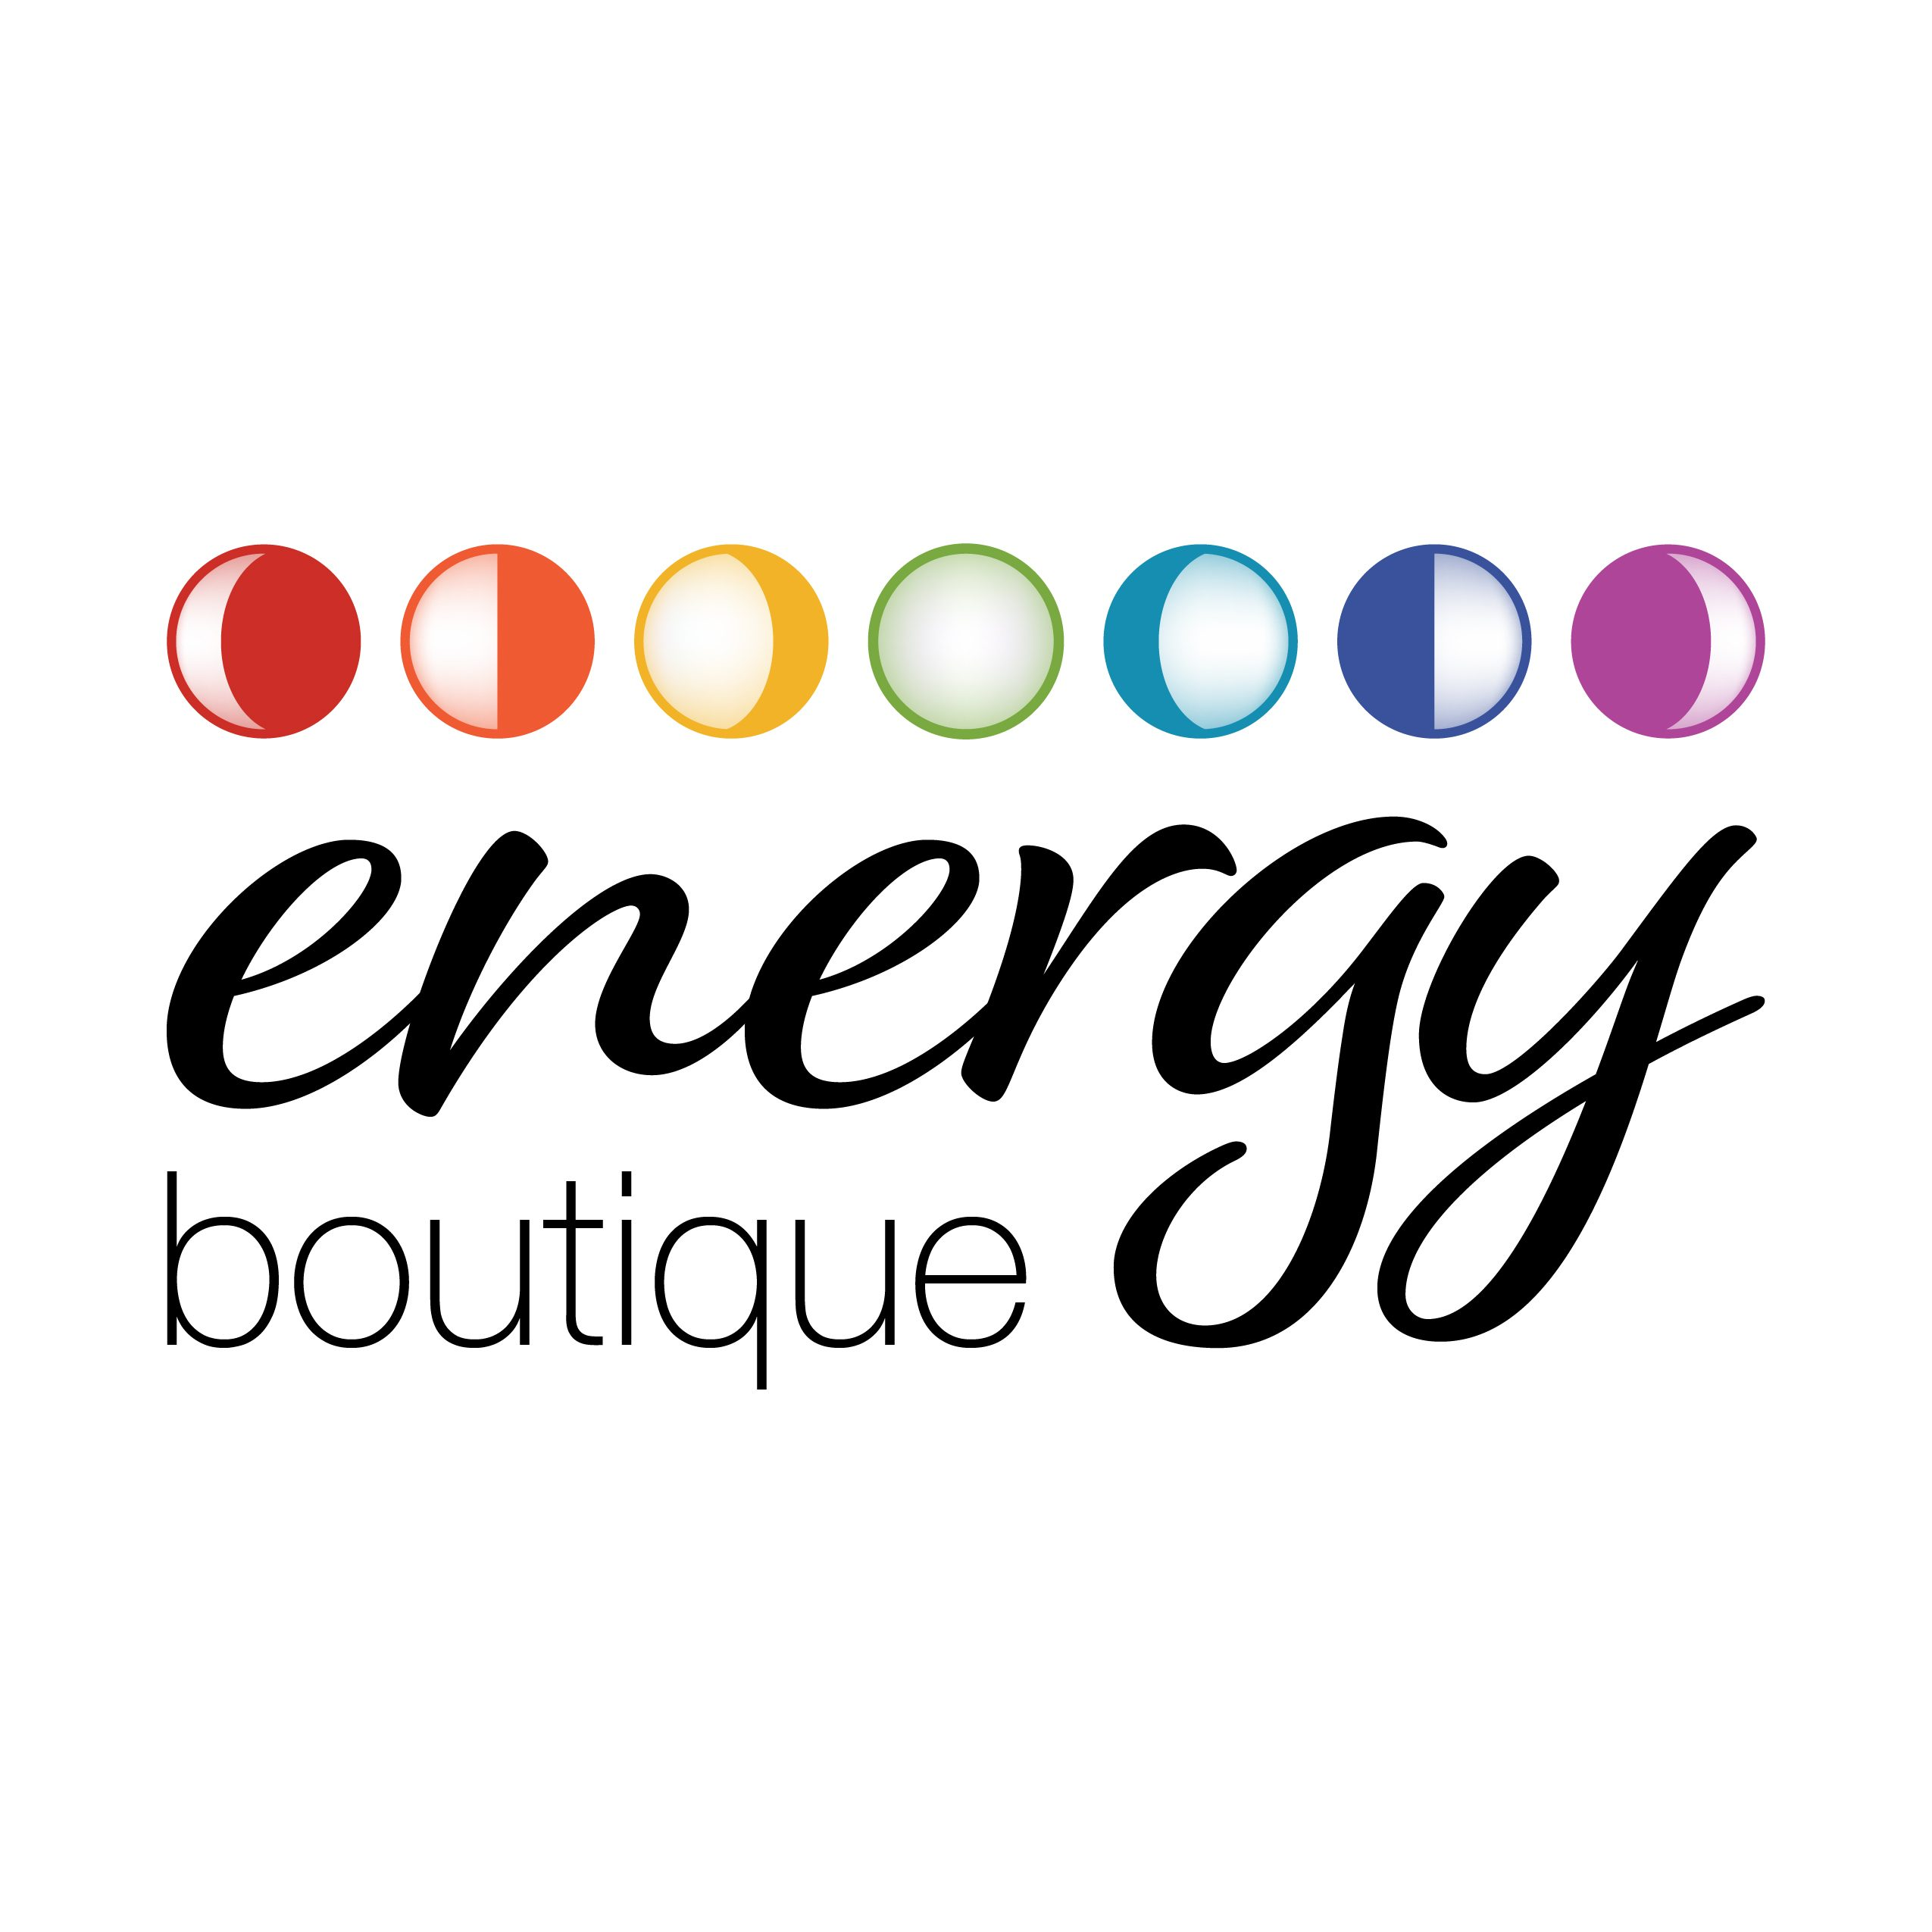 The Energy Boutique